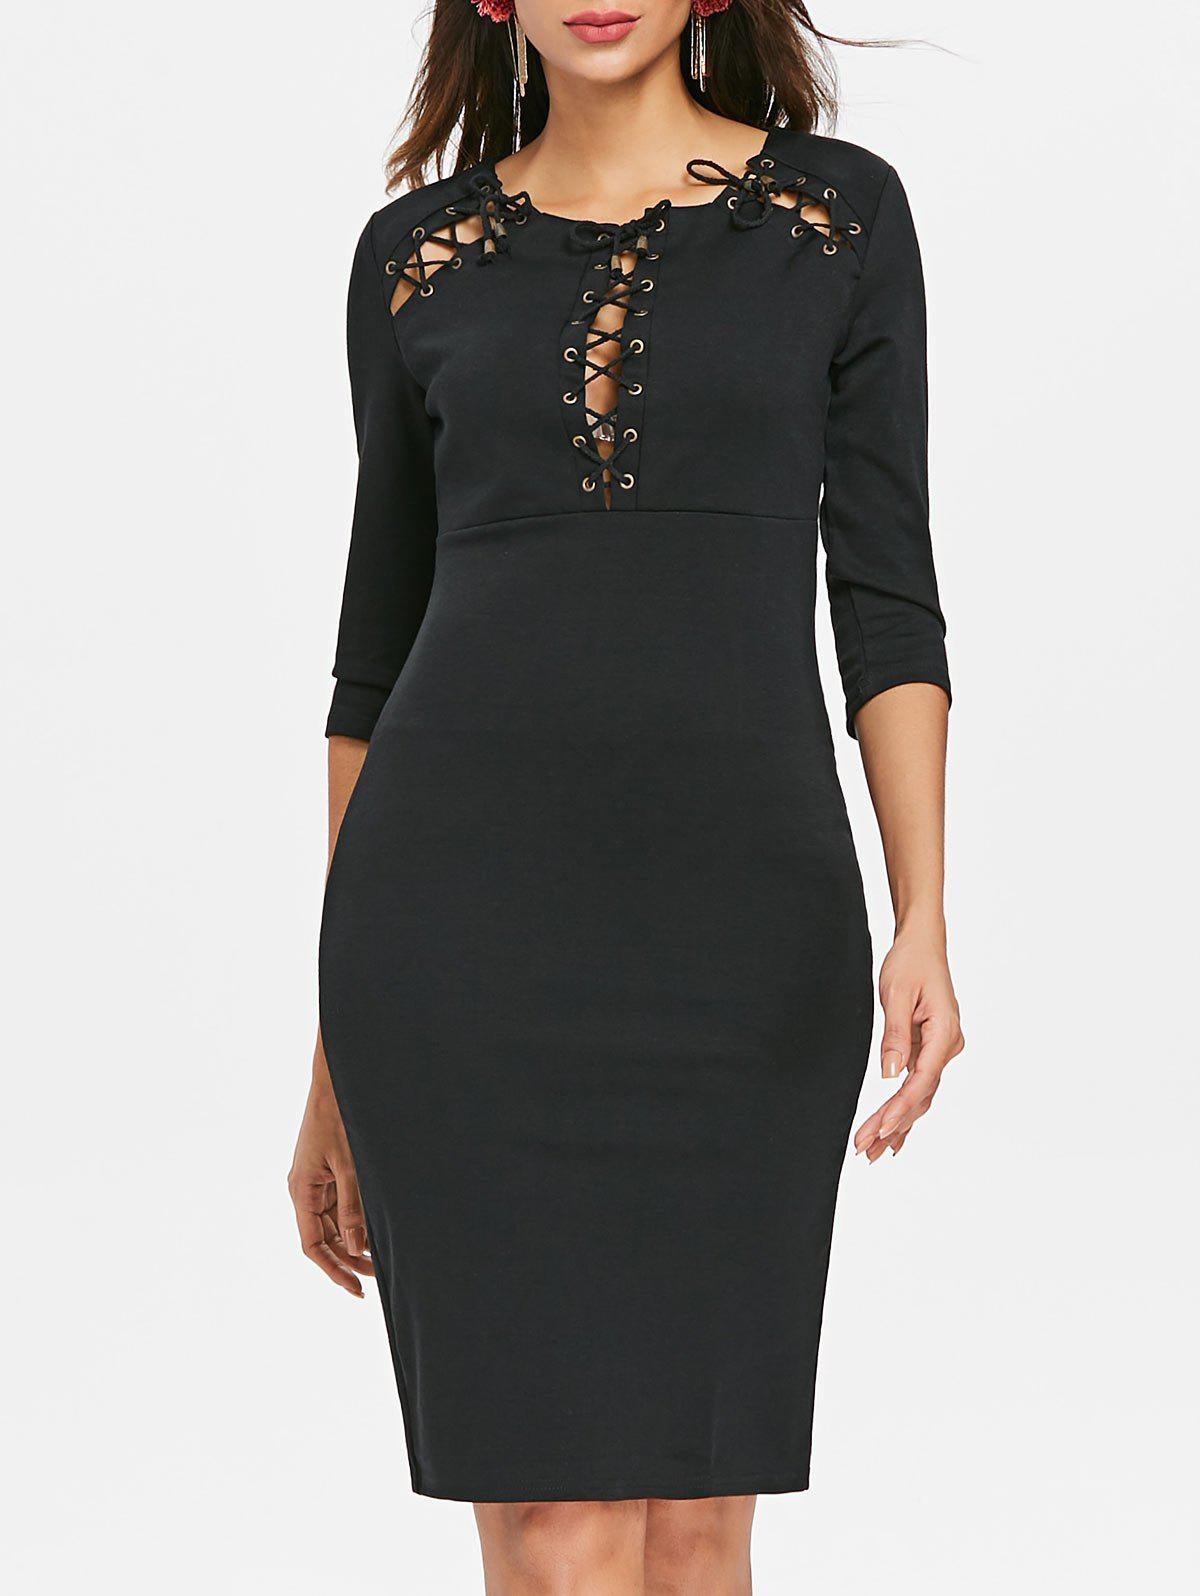 Chic Lace Up Party Pencil Dress